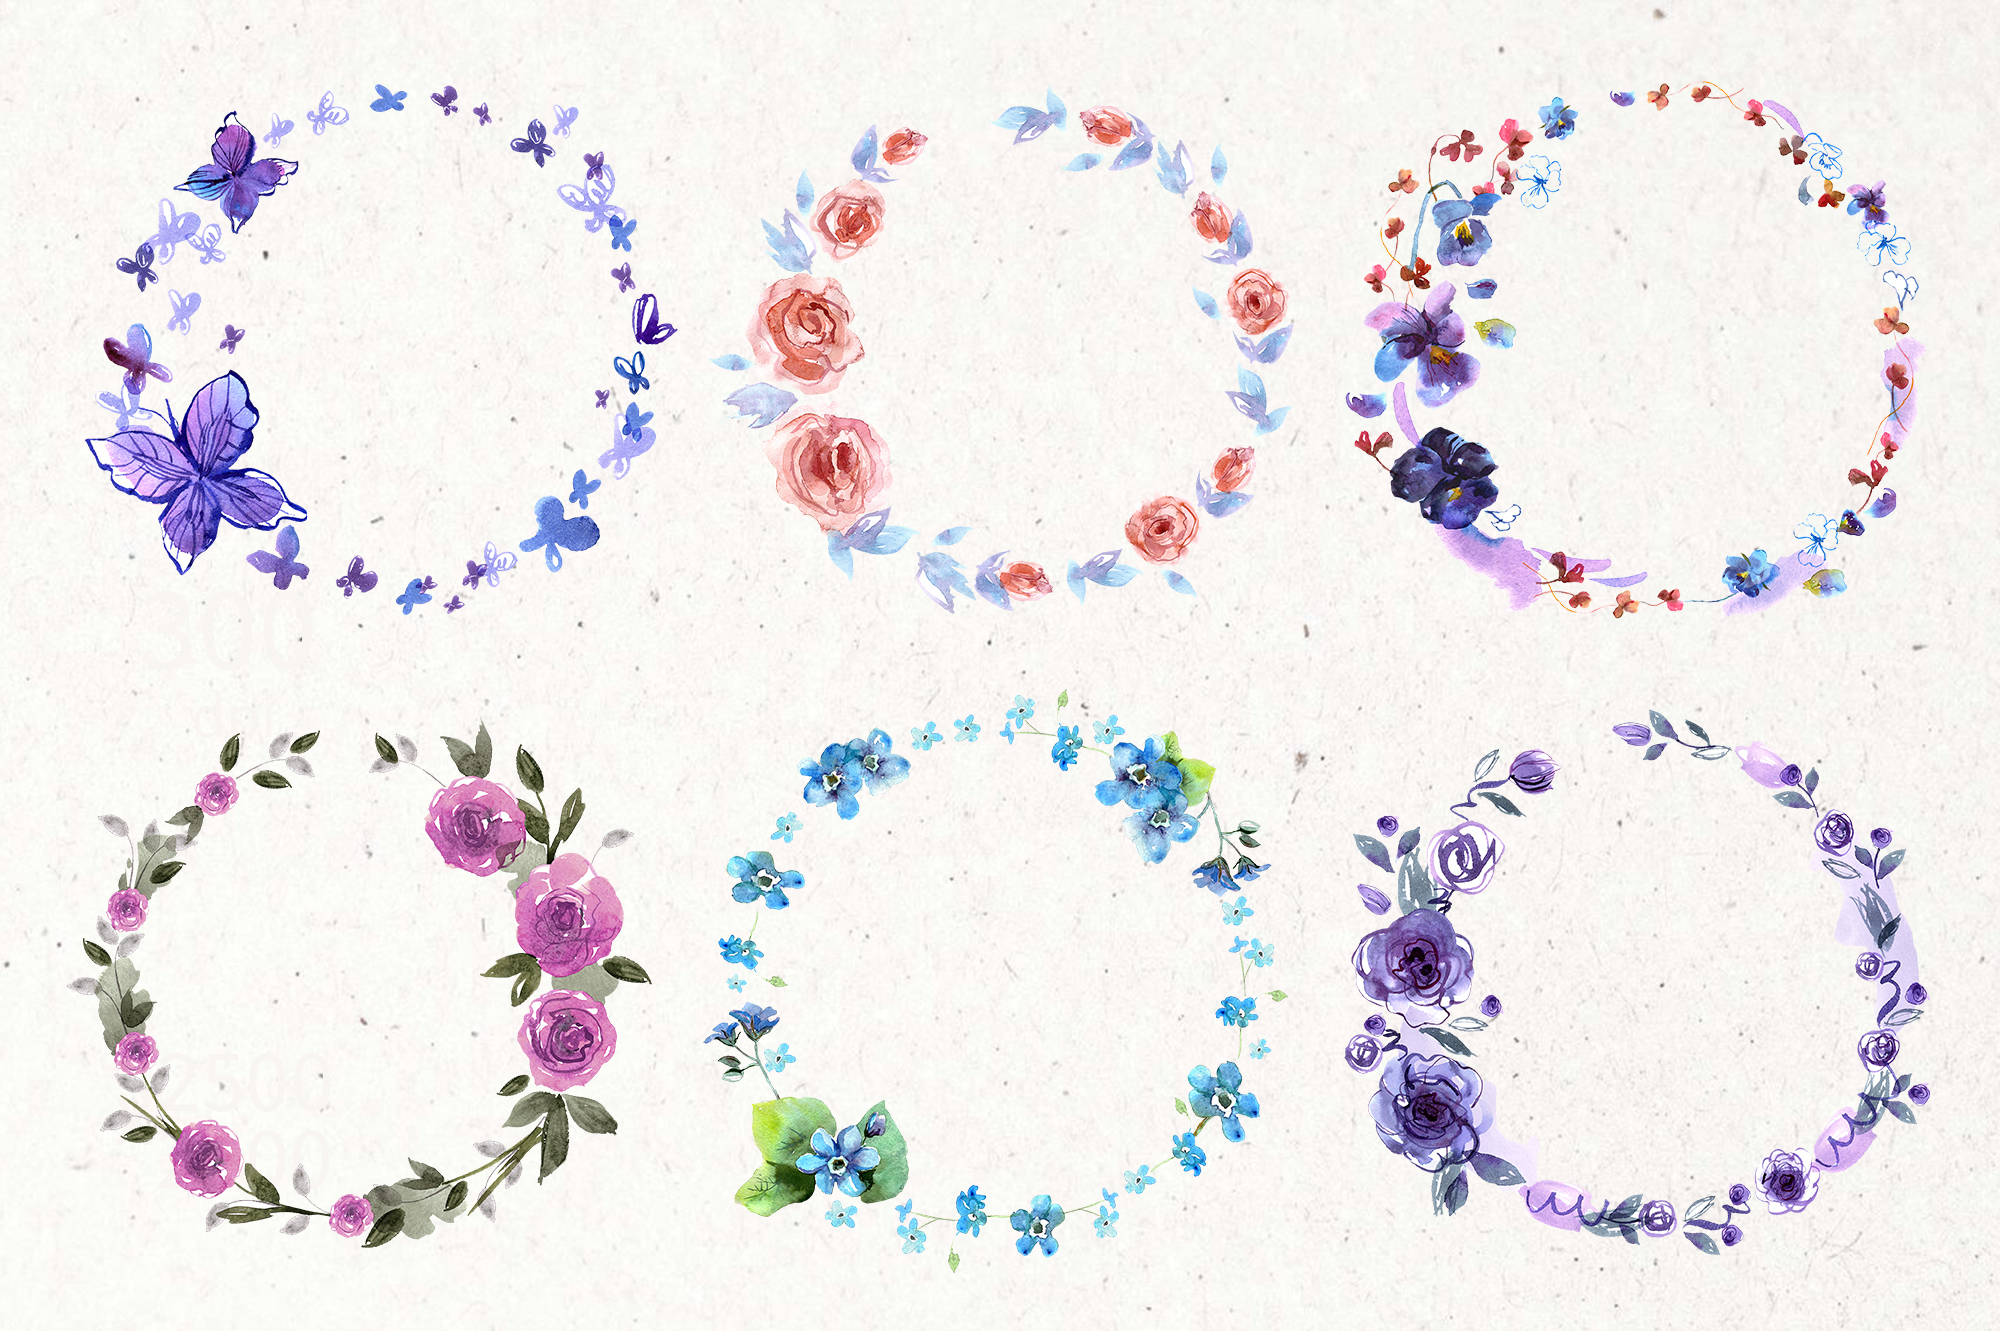 30 Watercolor Floral Wreaths example image 2